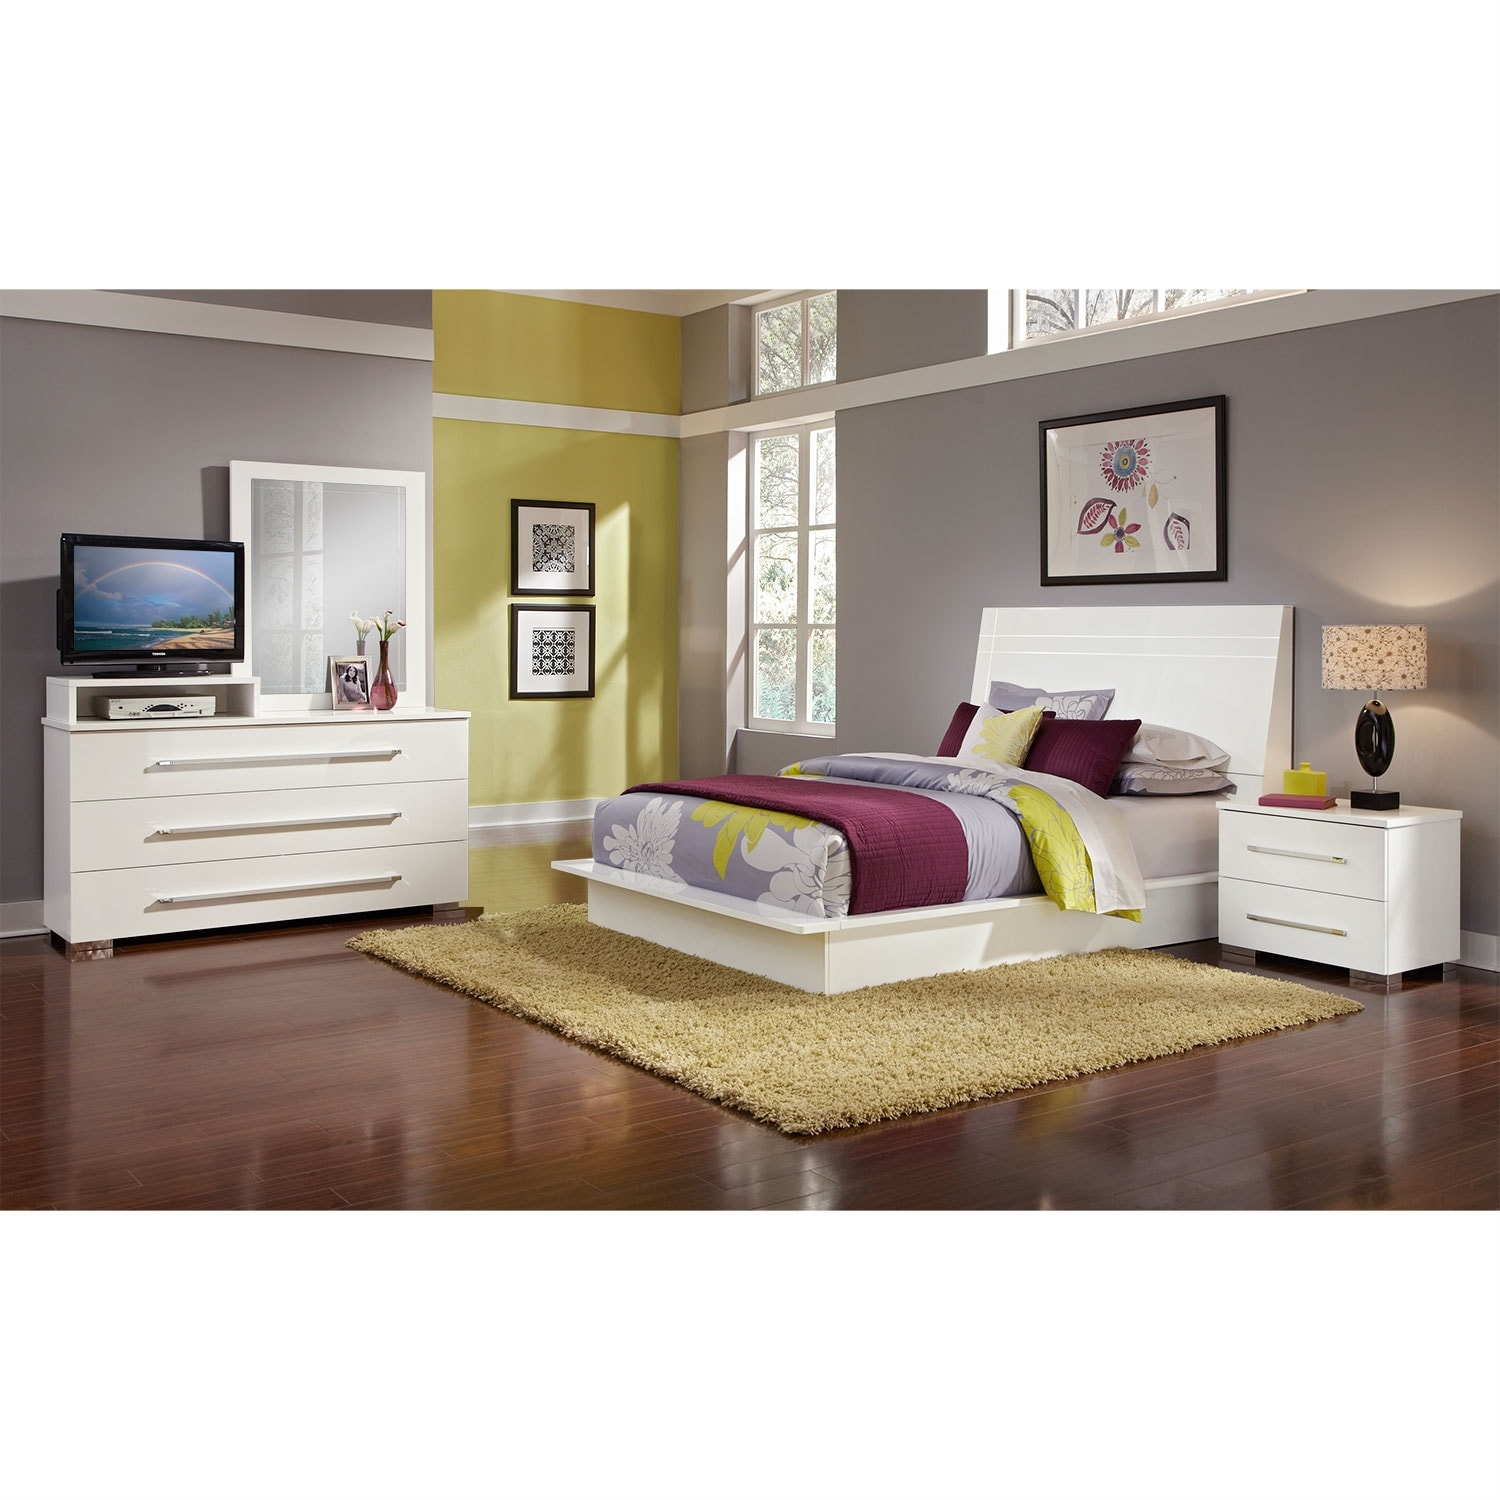 Dimora 6 piece queen panel bedroom set with media dresser for Bedroom 6 piece set